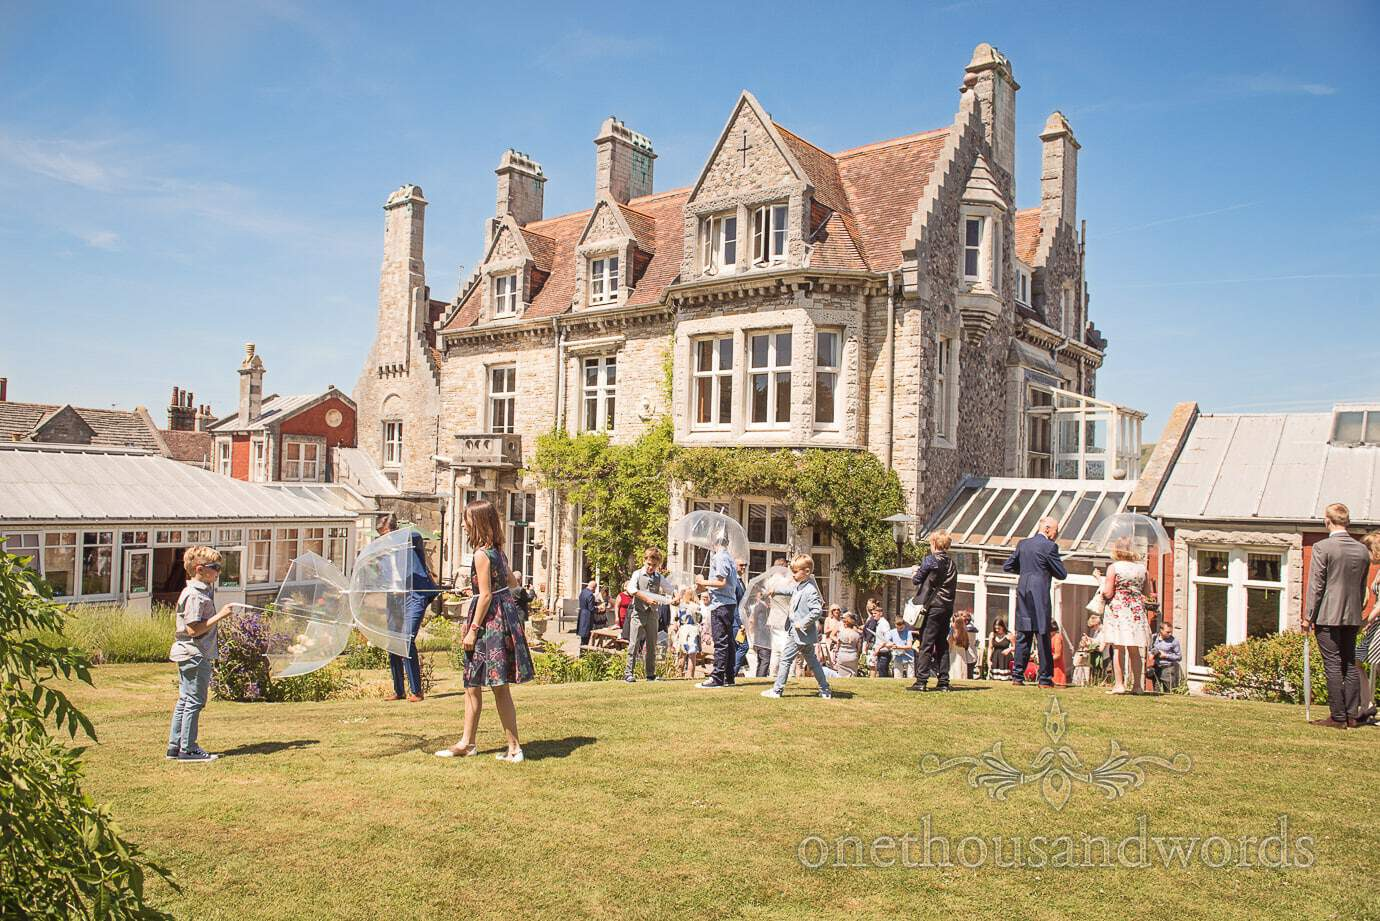 Purbeck House Hotel wedding venue in Swanage, Dorset with summer wedding